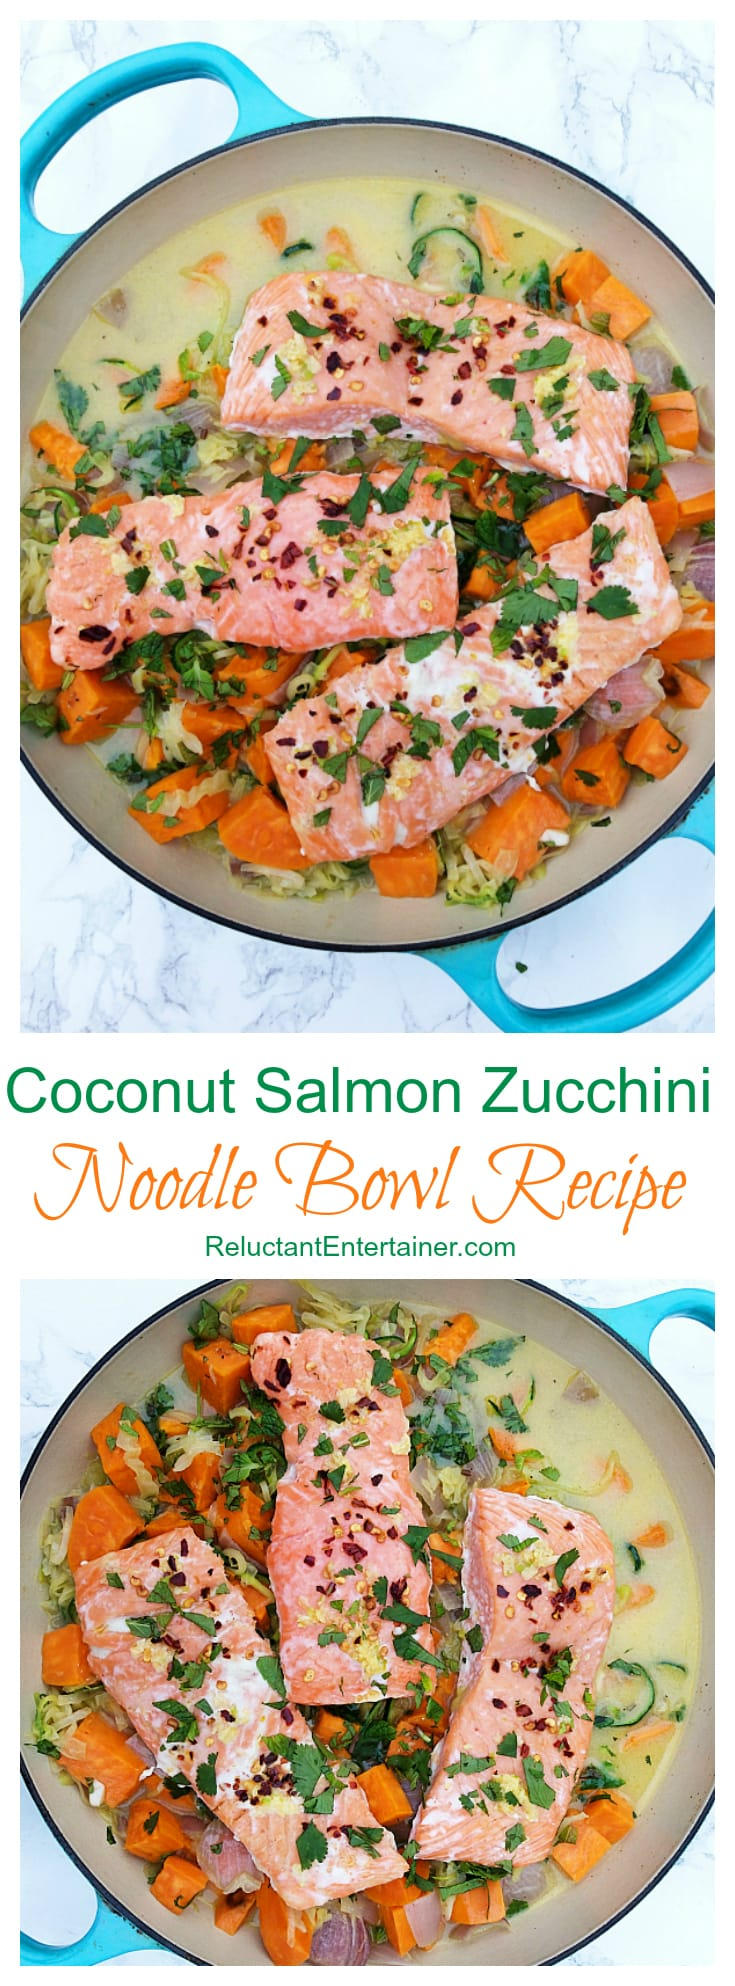 Coconut Salmon Zucchini Noodle Bowl Recipe